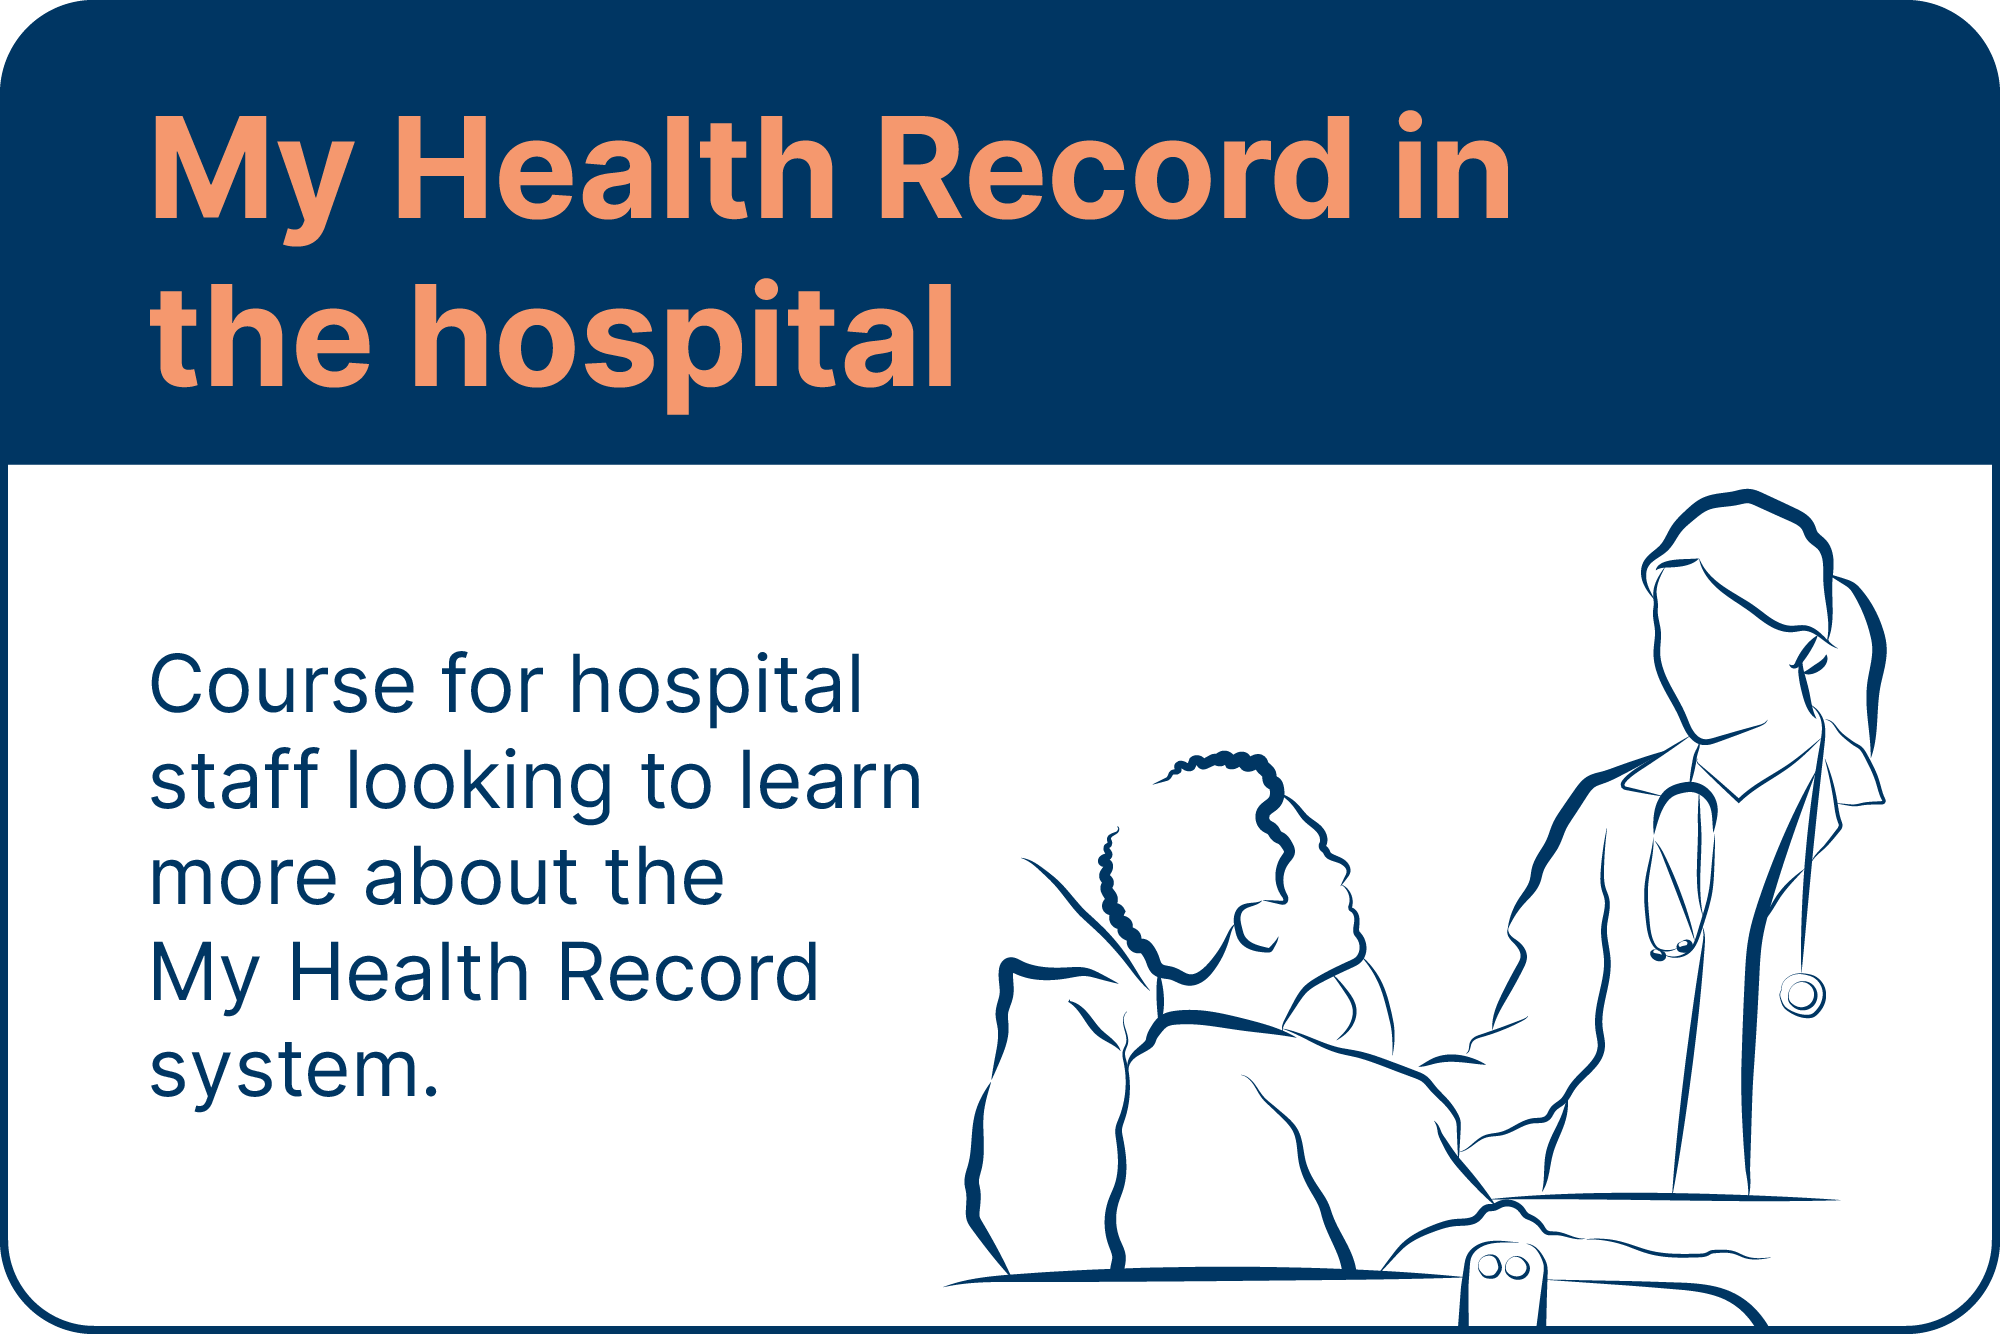 My Health Record in Hospitals